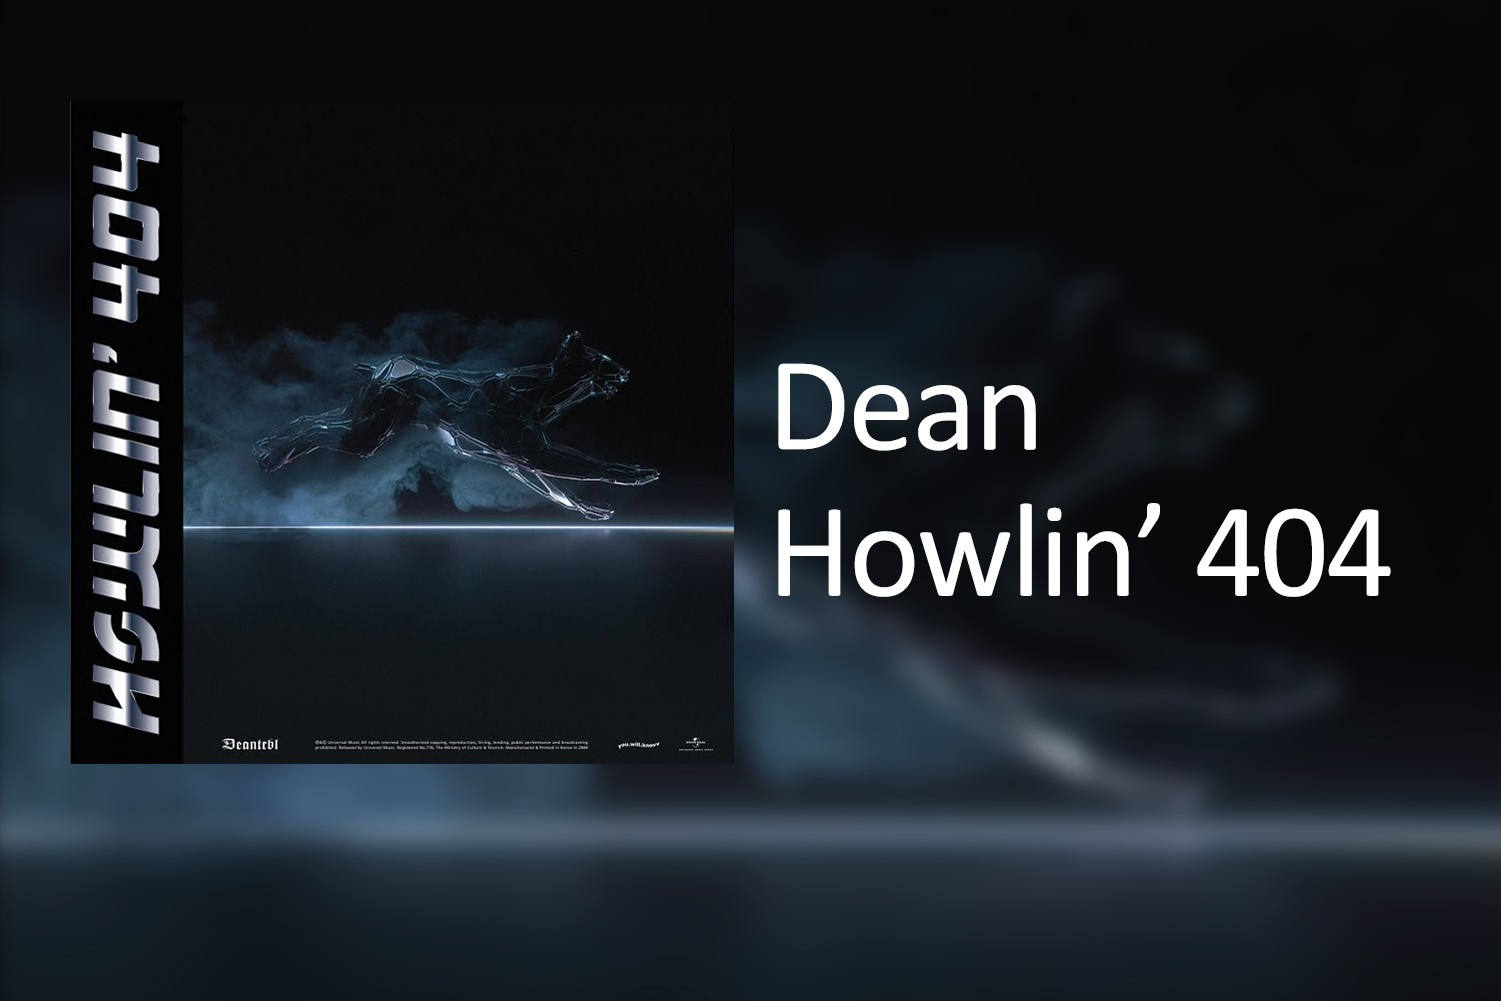 """R&B singer, songwriter, rapper and producer Dean is back with another moody single aptly titled """"Howlin' 404,"""" his latest since late 2018s """"dayfly"""" featuring Sulli and Rad Museum."""